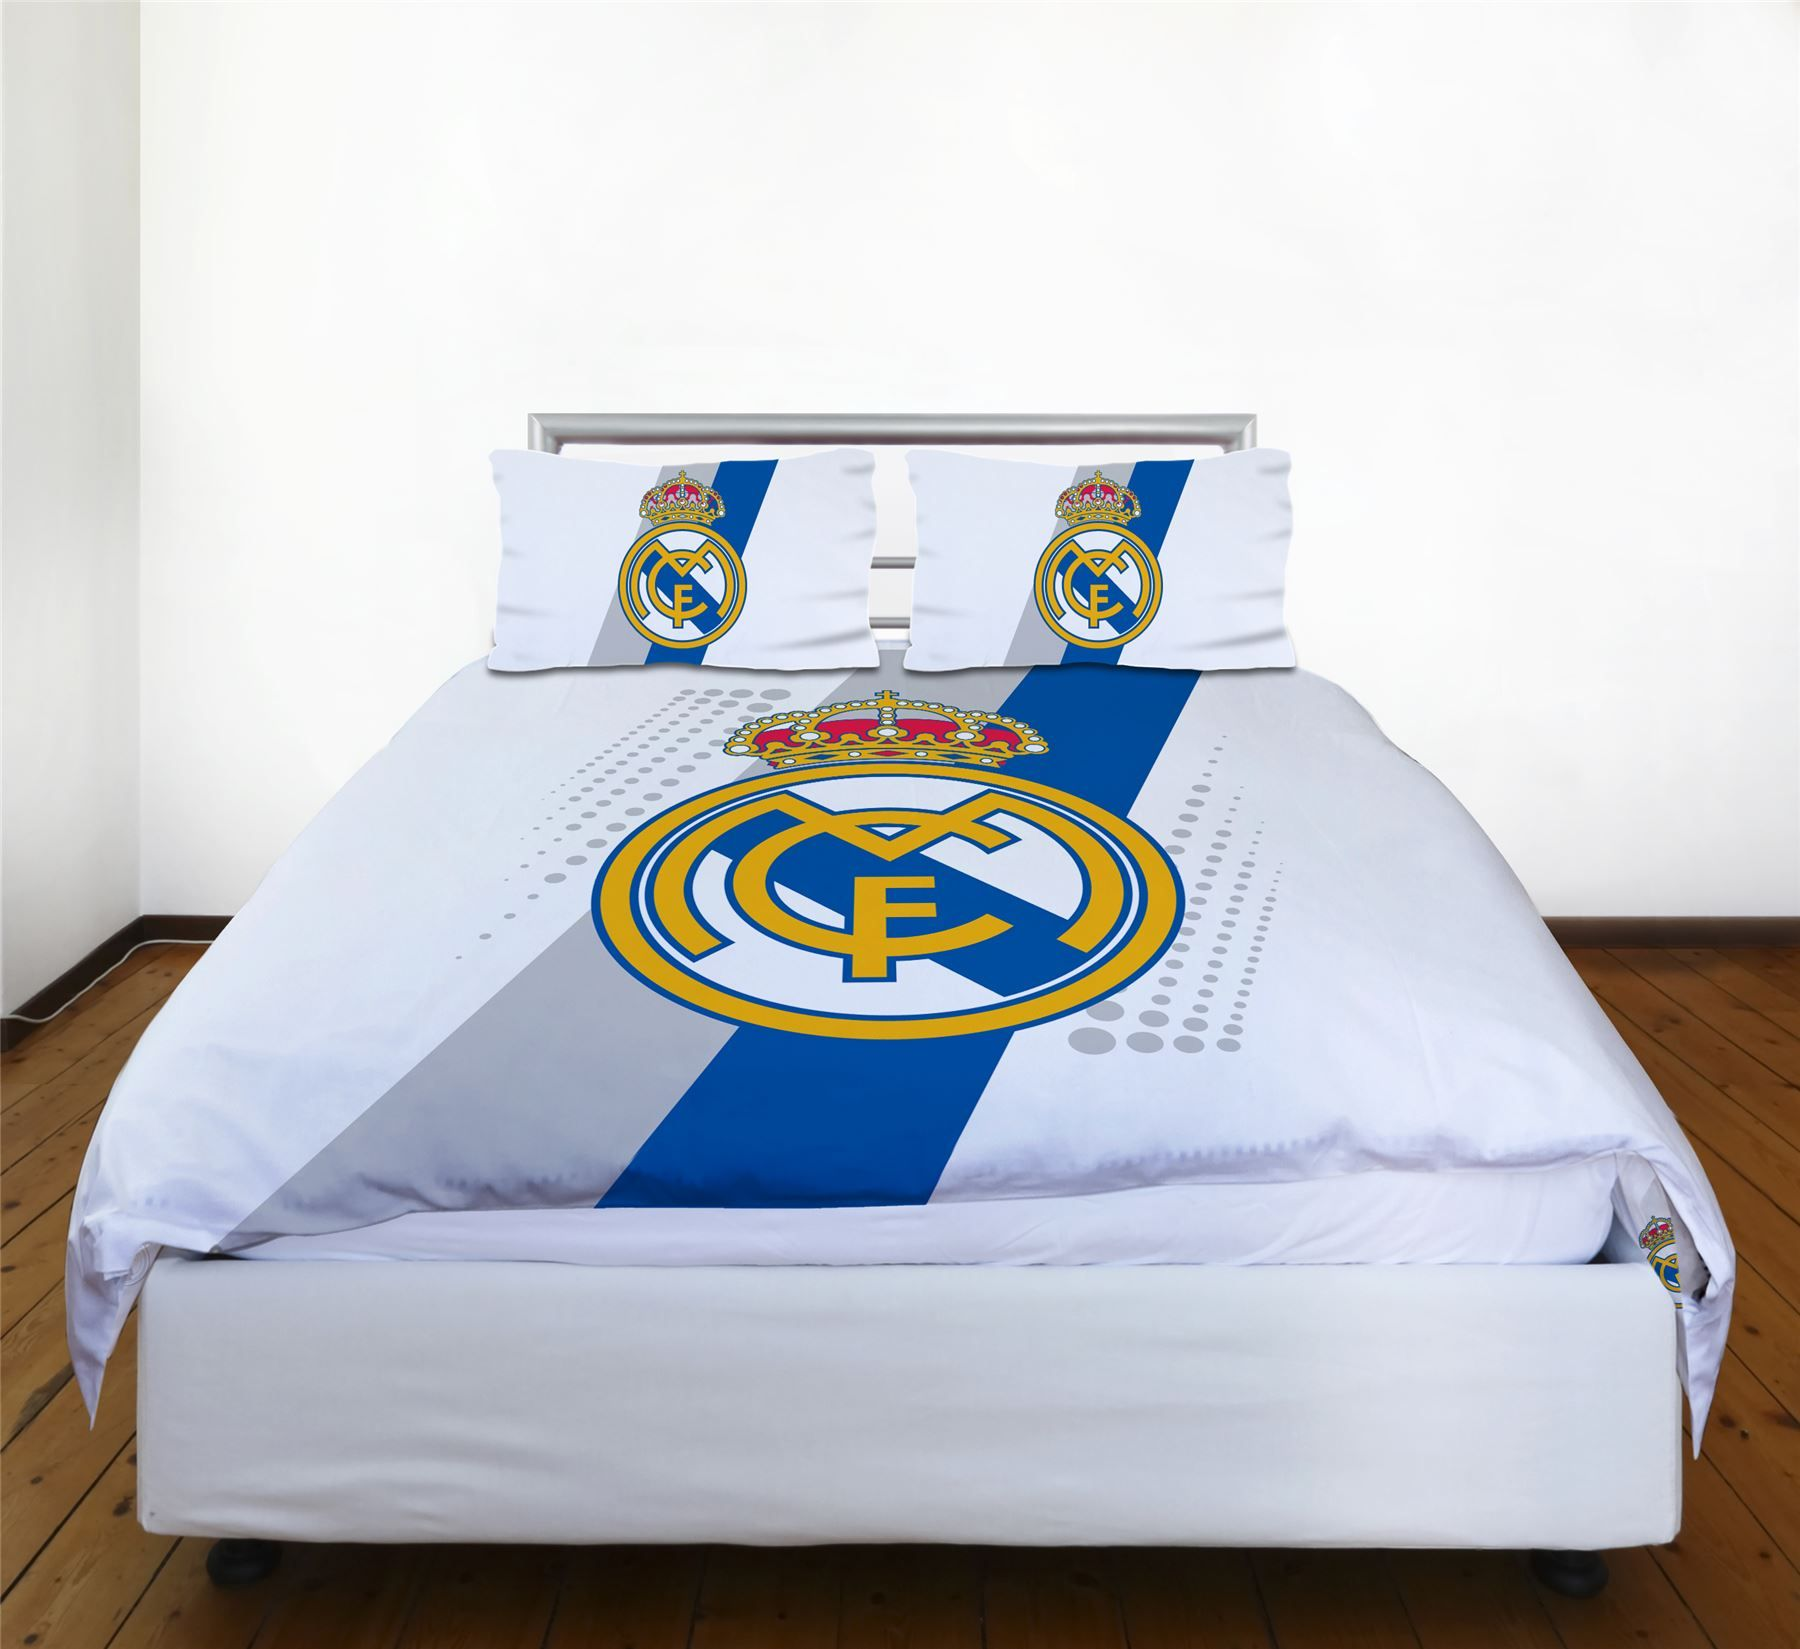 Real madrid literie accessoires football housse couette for Housse couette football